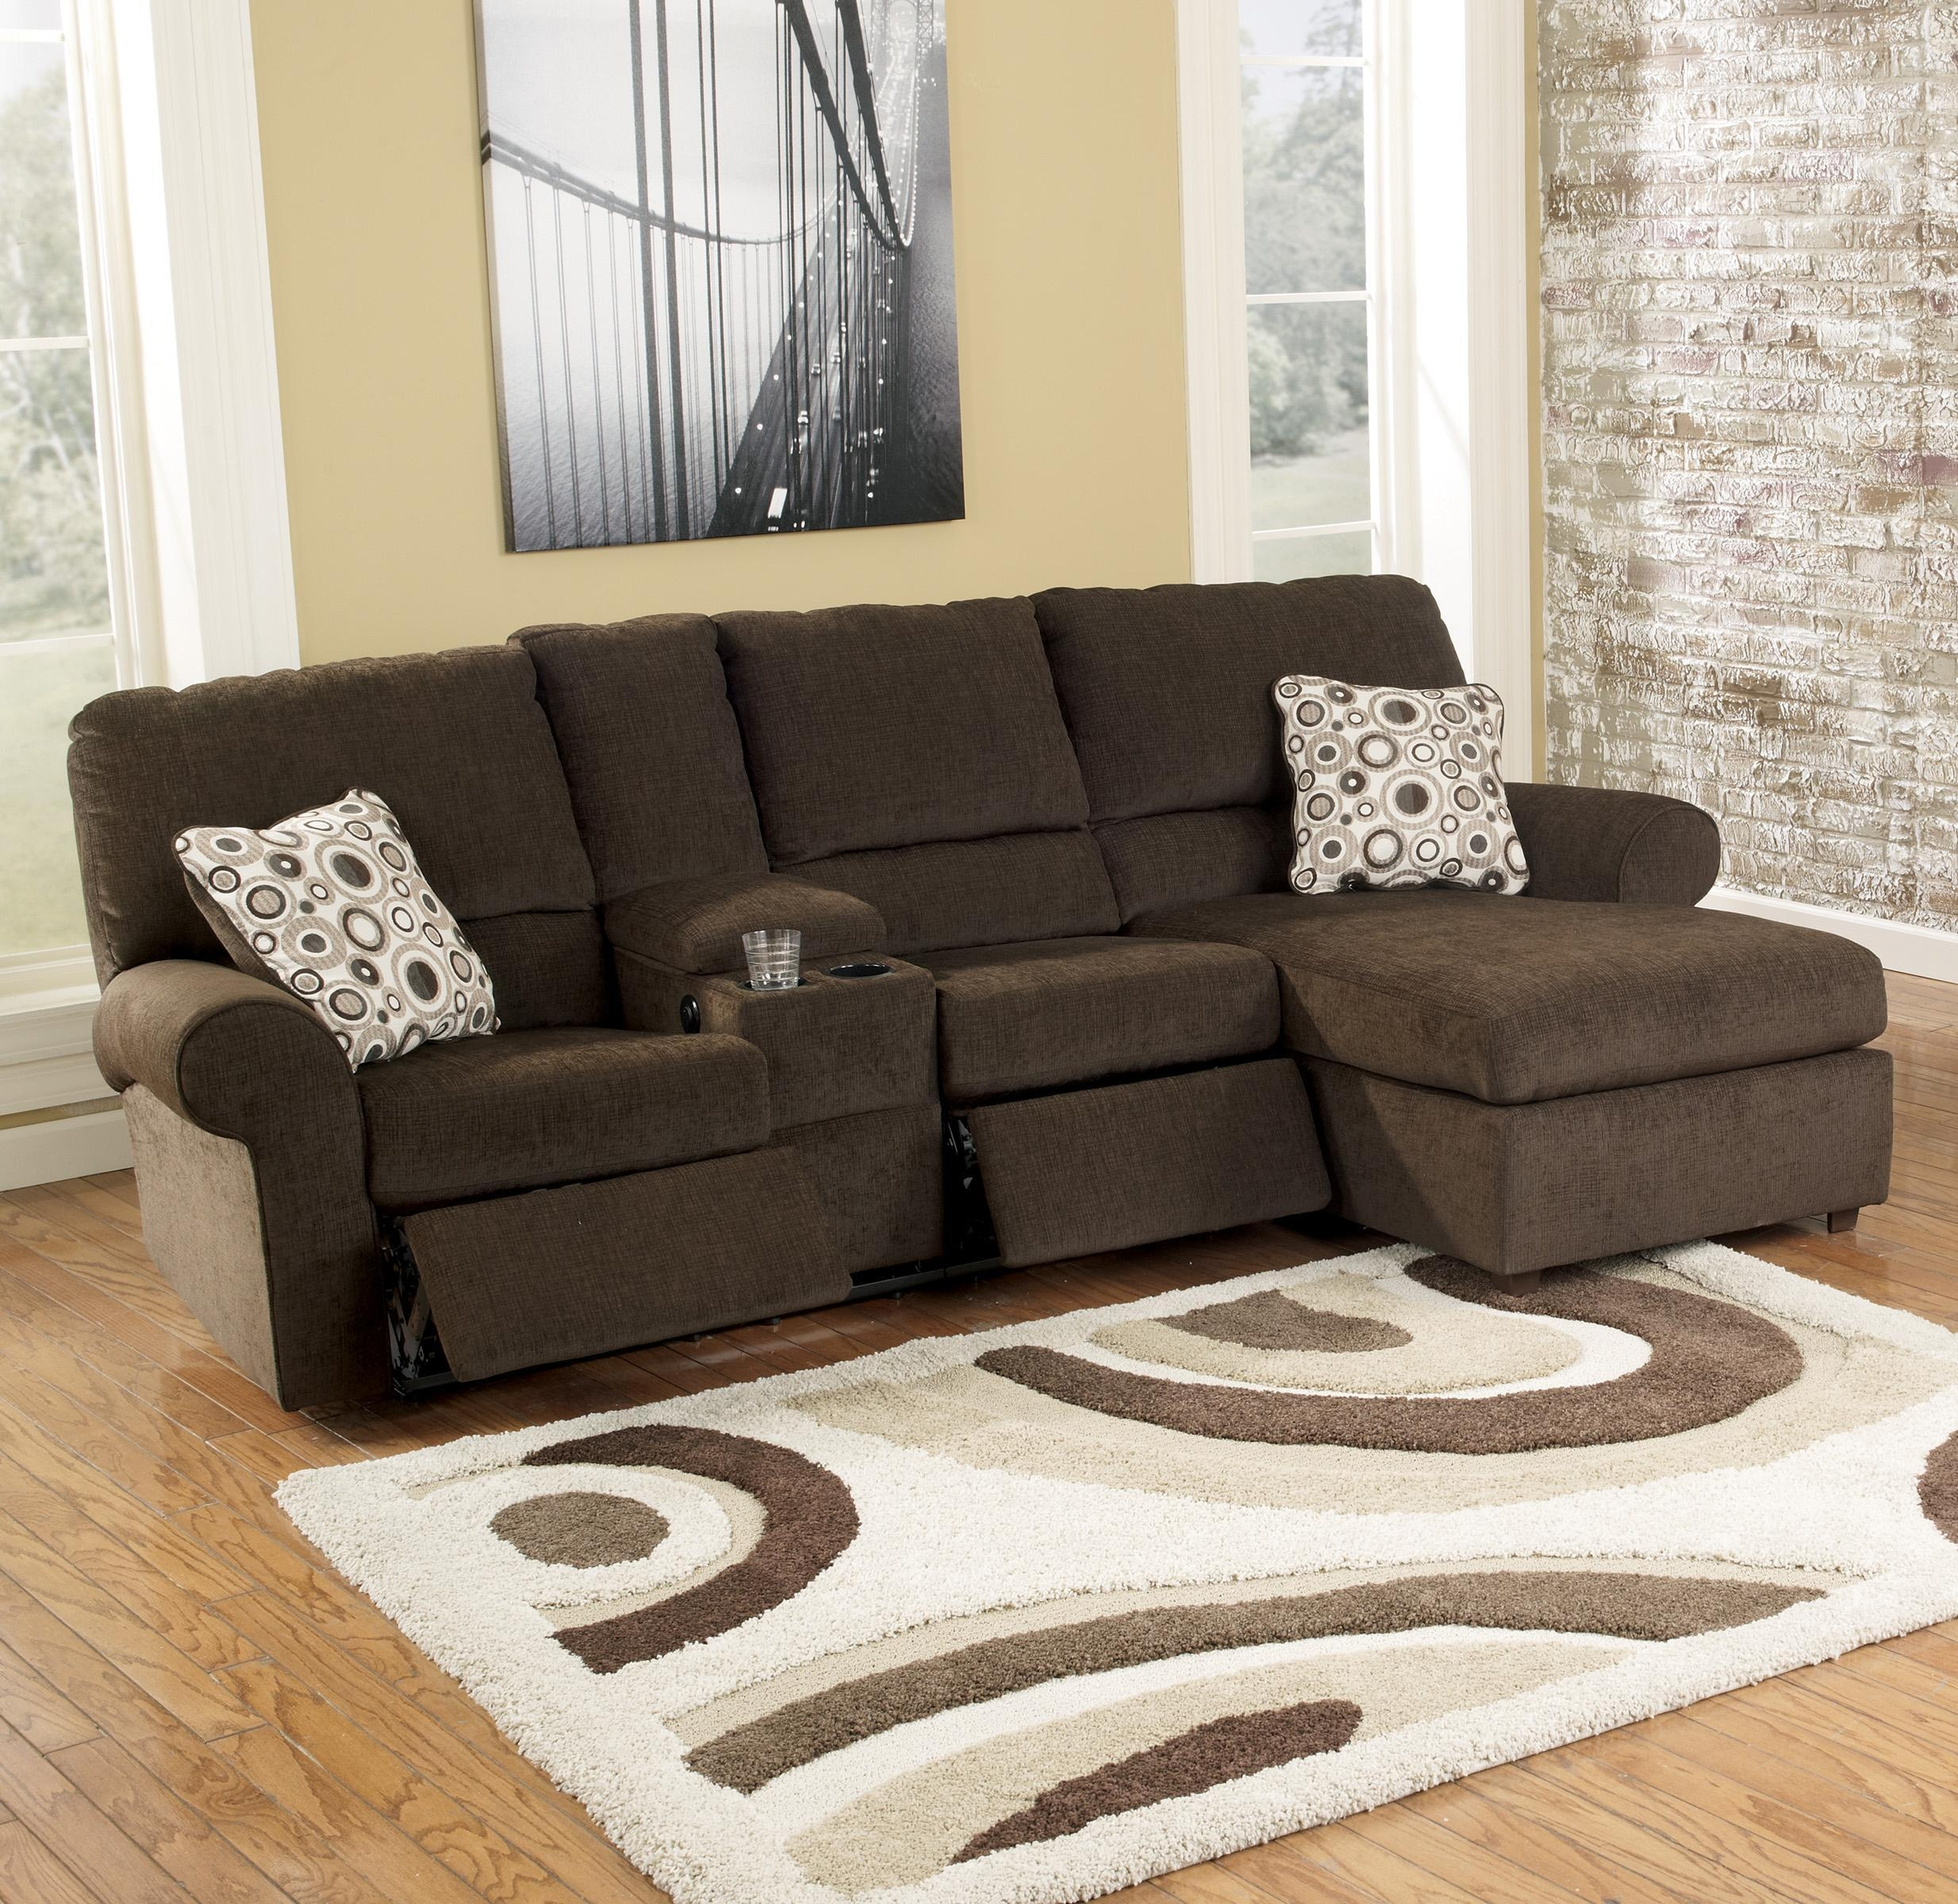 Sofas : Fabulous Sectional Sleeper Sofa Tan Leather Sectional Pertaining To Sectional Sofa Recliners (View 12 of 20)